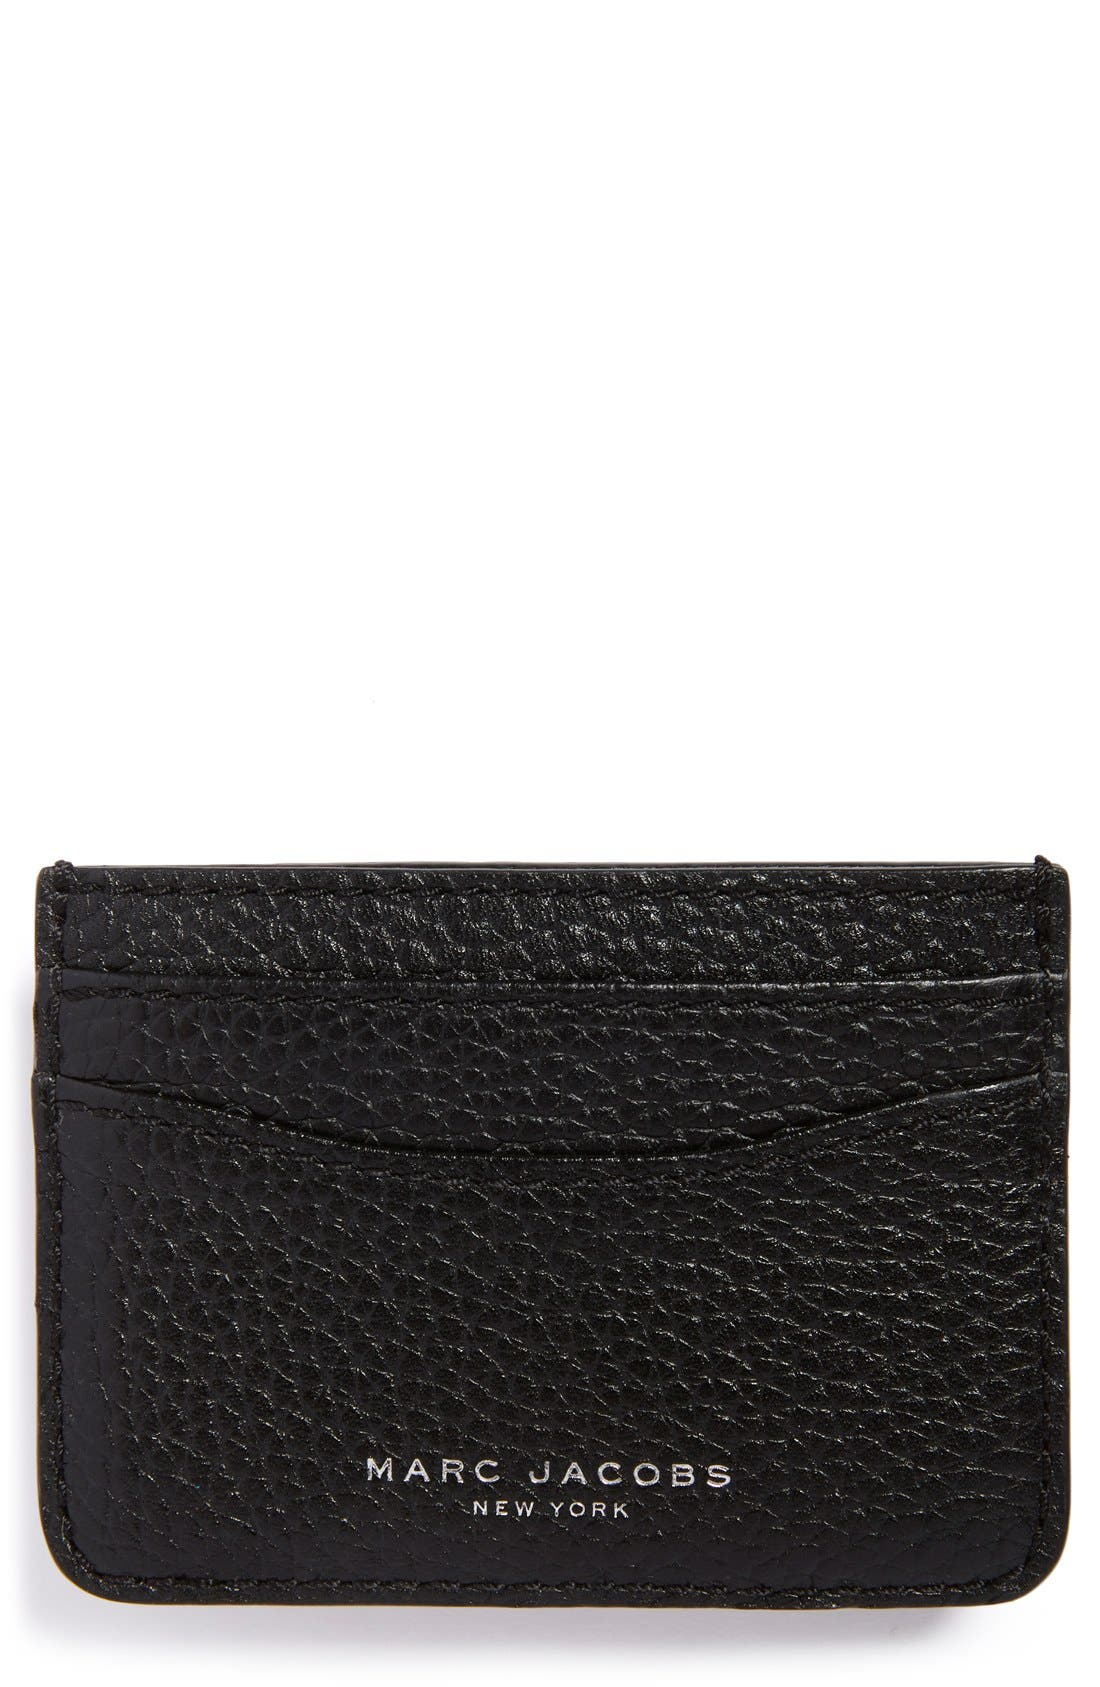 'Gotham' Leather Card Case,                         Main,                         color, Black